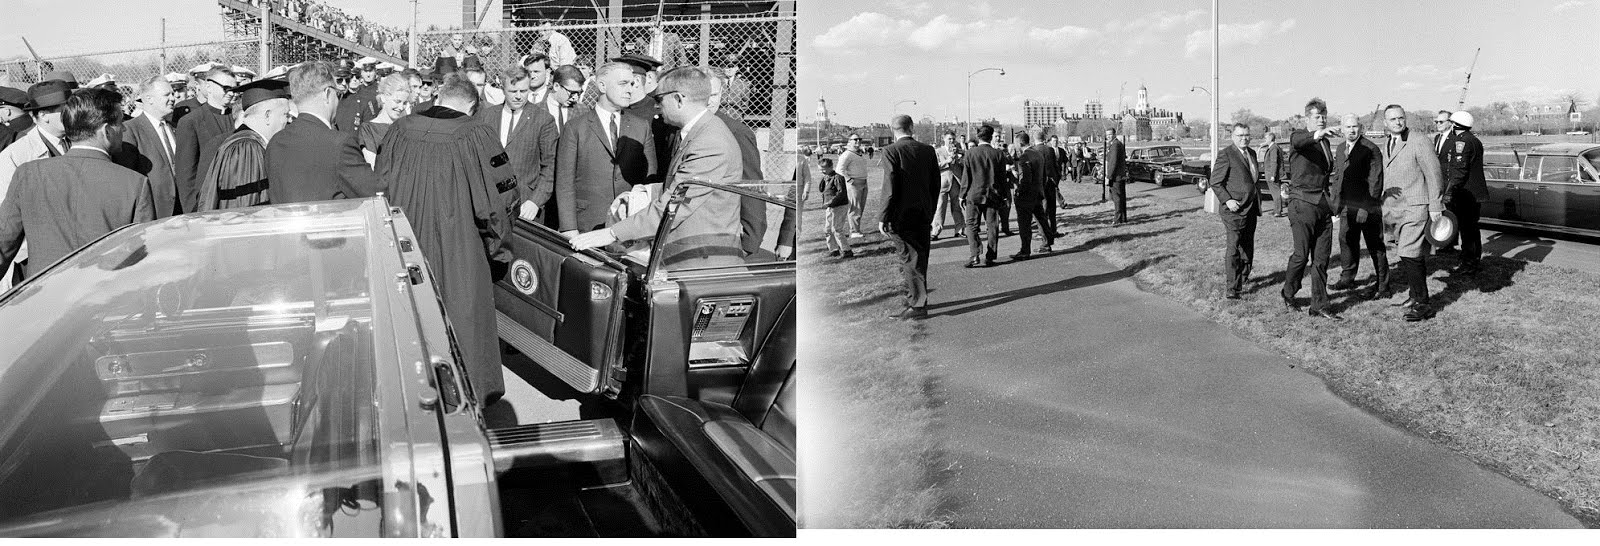 4/20/63, Boston, MA: JFK and the bubbletop again!